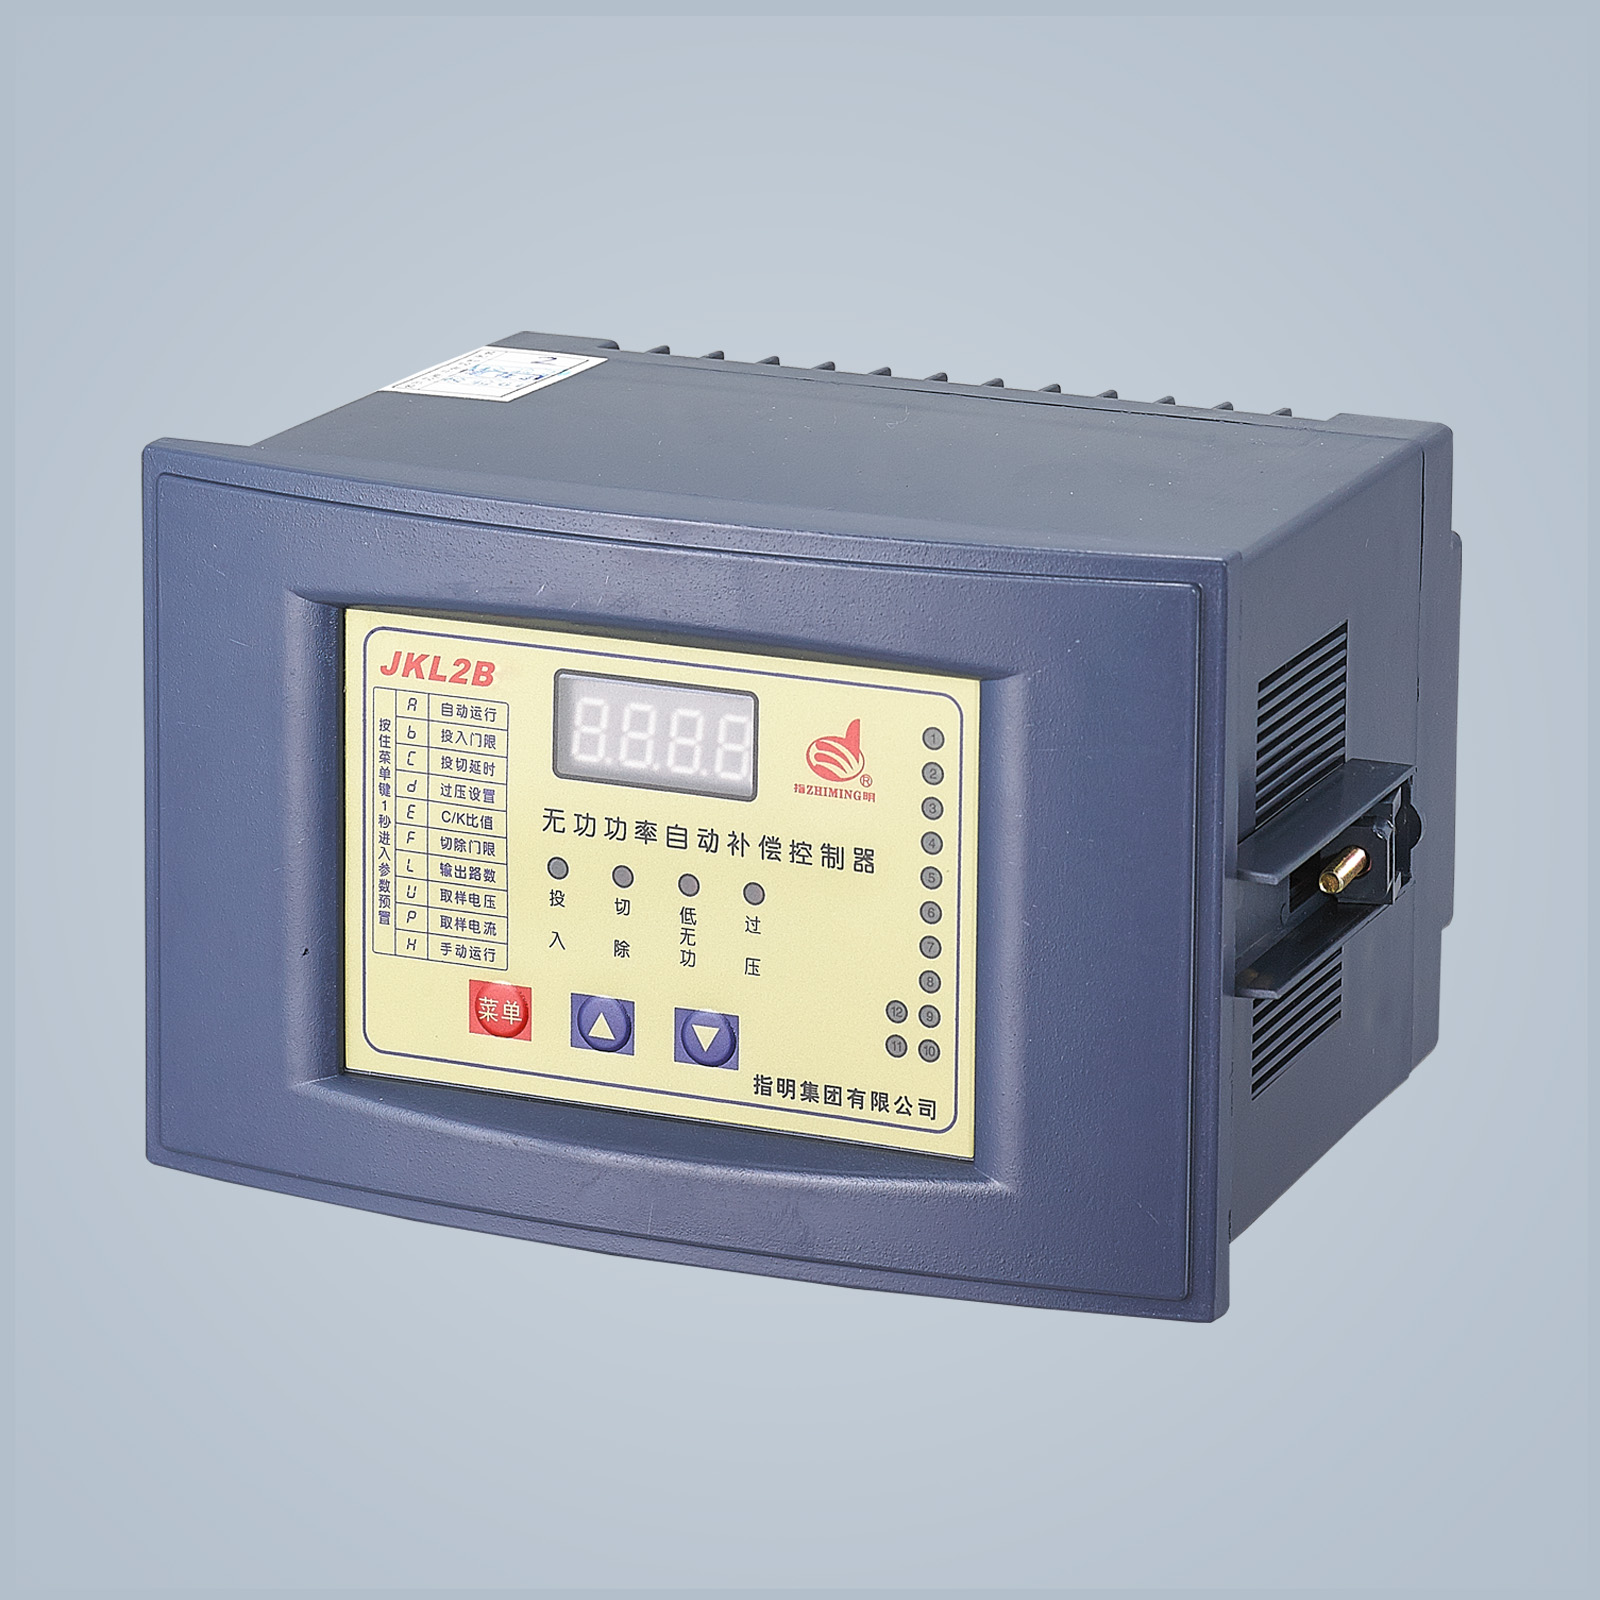 JKL2B Series Reactive power auto-compen sation controller 380V